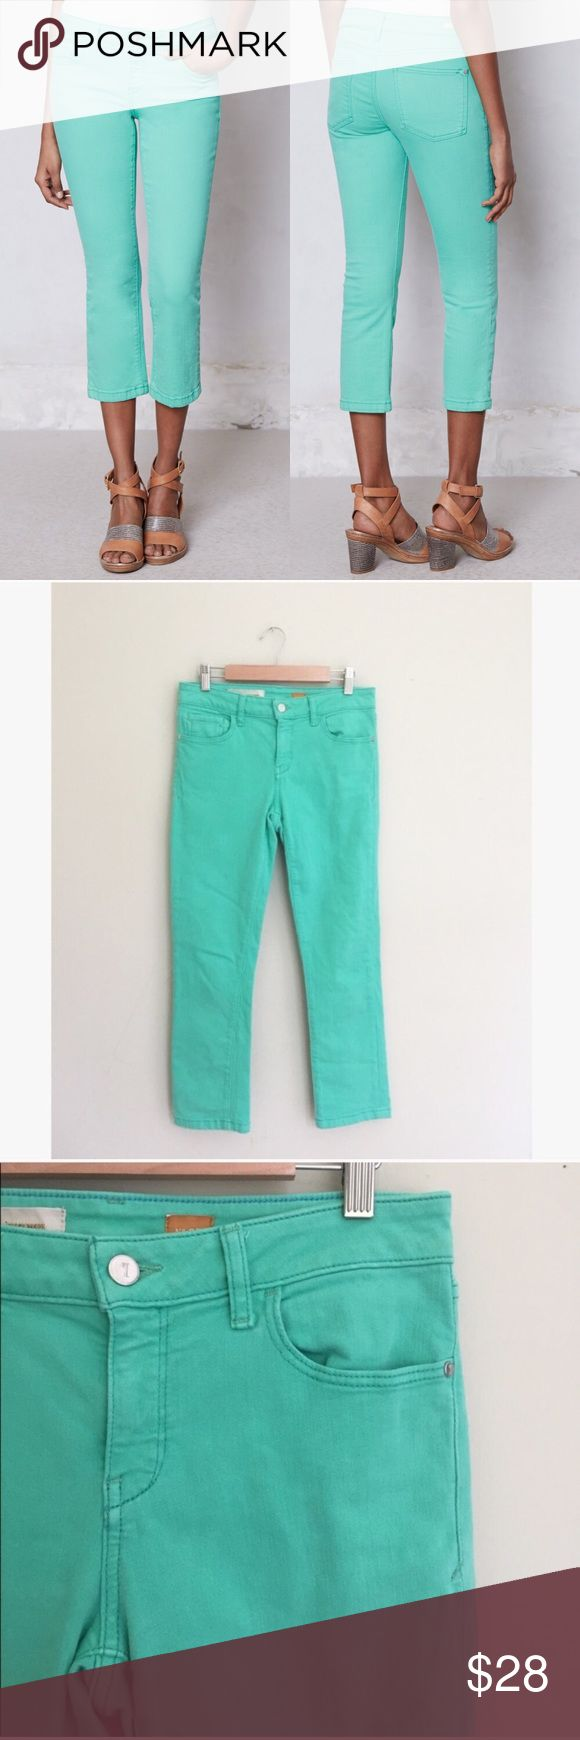 "Anthropologie Pilcro Stet Cropped Aqua Jeans Pilcro Stet Cropped Jeans In Aqua green from Anthropologie. Bright and stretchy, these beauties are perfect with stripes or polka dots. Color is accurate in the second photo. Gently worn near the pockets from washing, no holes or stains. Size 27.   Approximately 25"" inseam, 8.5"" rise, 6"" wide ankle, 28"" waist, 32"" hips.   No trades, offers welcome! Anthropologie Jeans Ankle & Cropped"